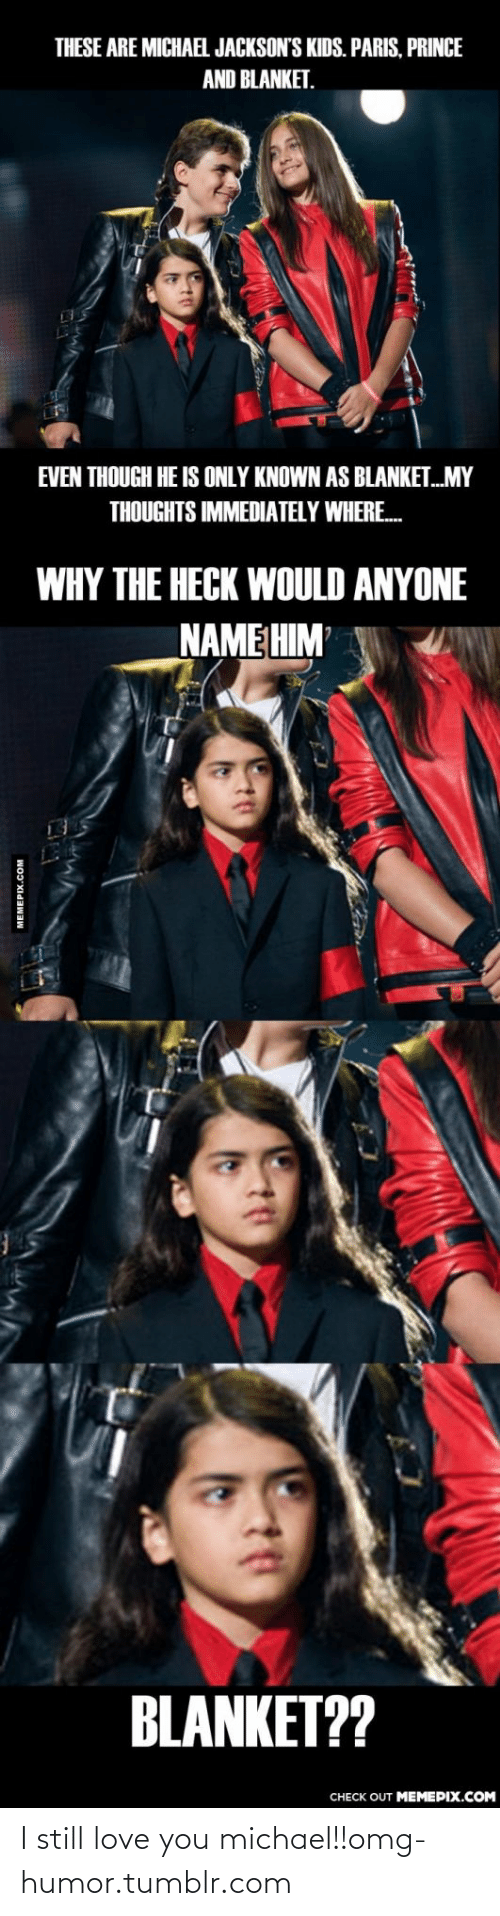 Michael Jacksons: THESE ARE MICHAEL JACKSON'S KIDS. PARIS, PRINCE  AND BLANKET.  EVEN THOUGH HE IS ONLY KNOWN AS BLANKET.MY  THOUGHTS IMMEDIATELY WHERE.  WHY THE HECK WOULD ANYONE  NAME HIM  BLANKET??  CHECK OUT MEMEPIX.COM  MEMEPIX.COM I still love you michael!!omg-humor.tumblr.com